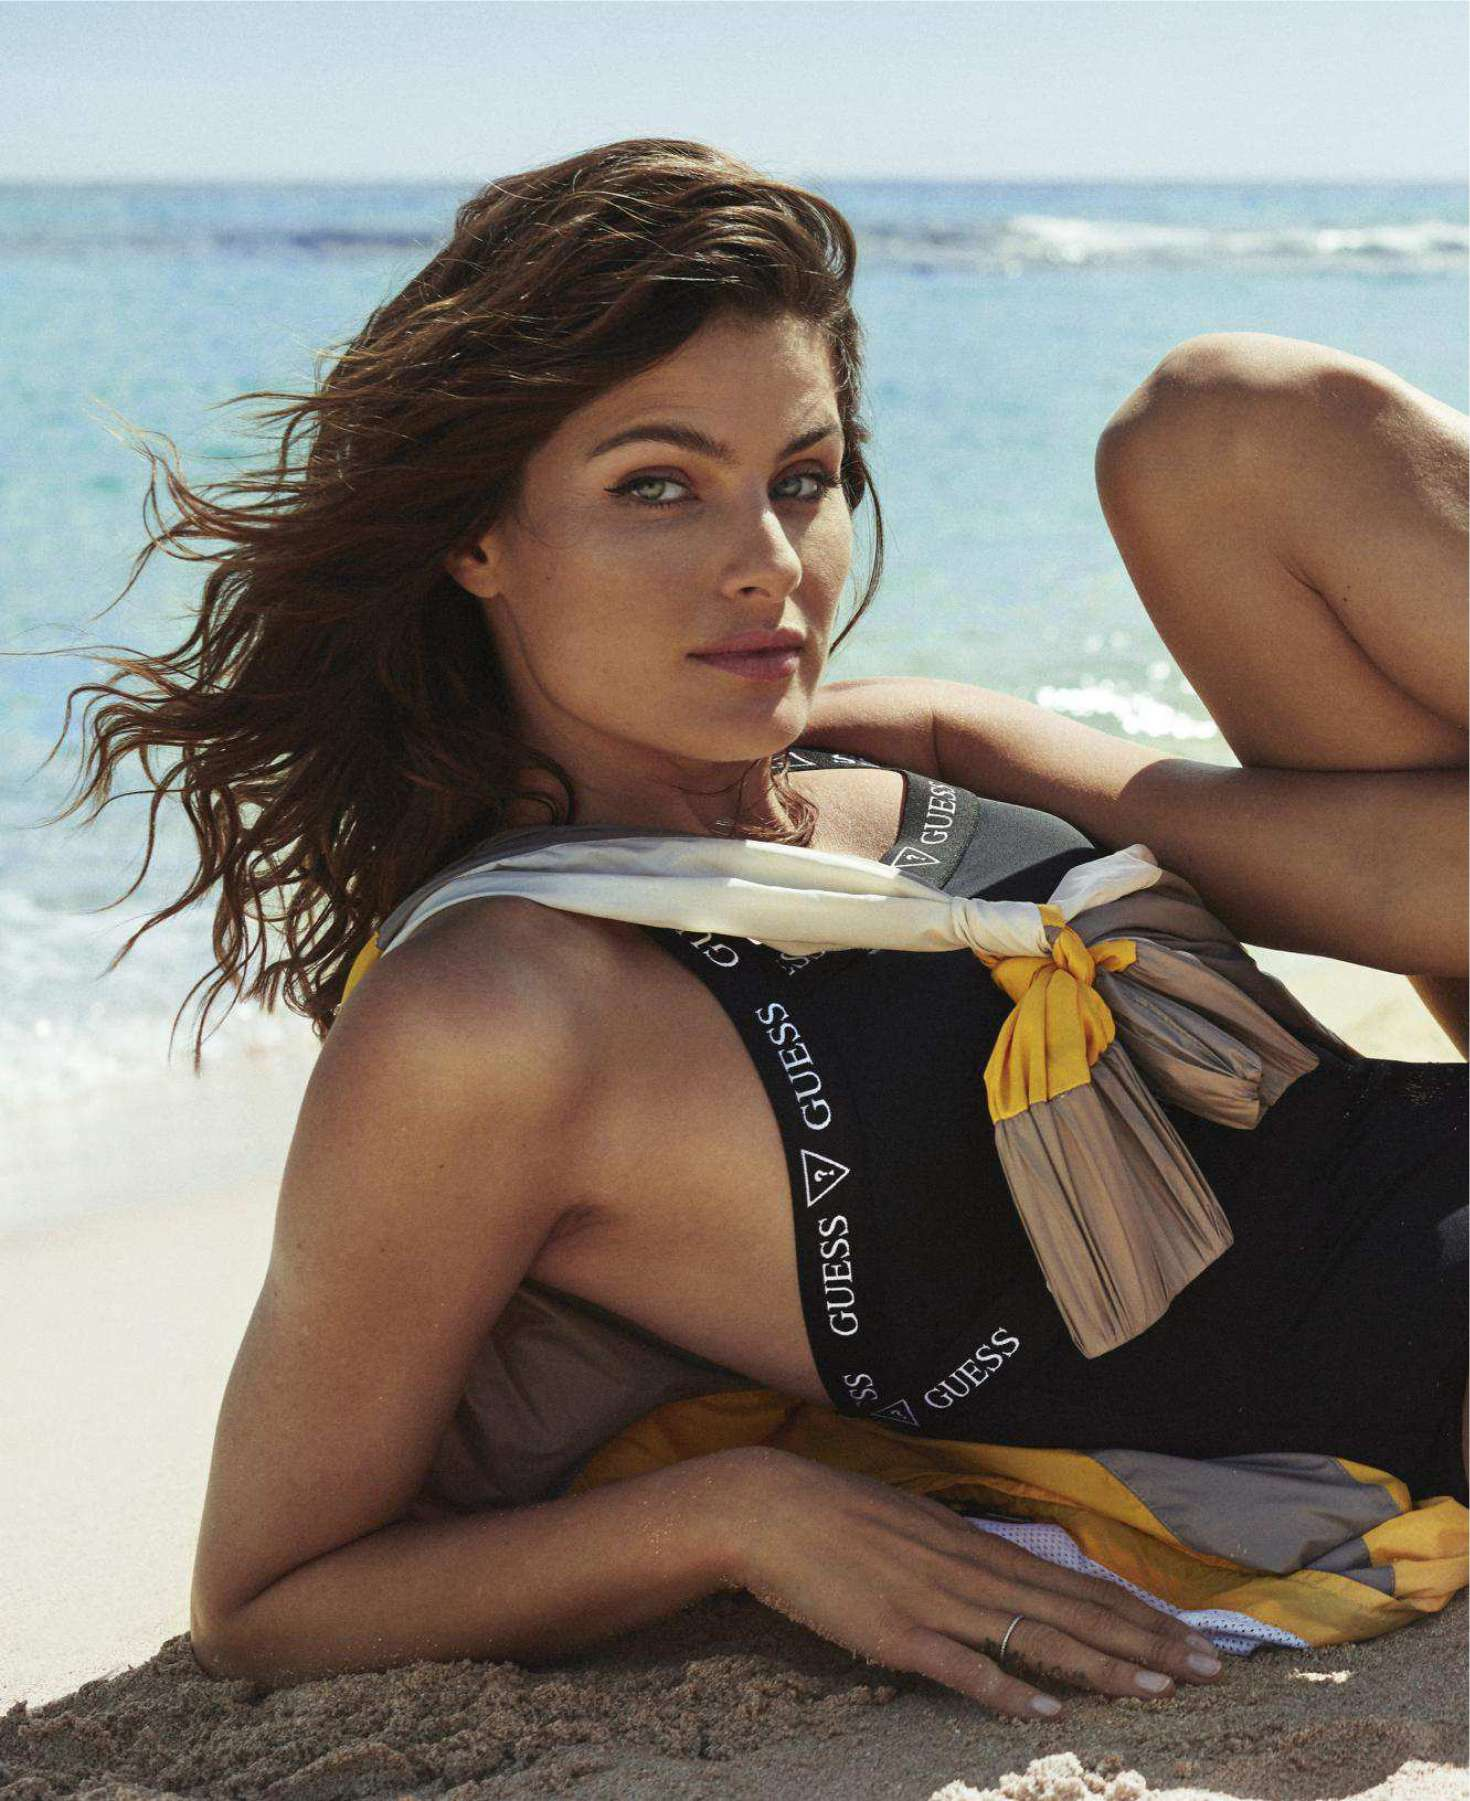 Hot Brunette Model Isabeli Fontana - Hot Brunette Model Isabeli Fontana